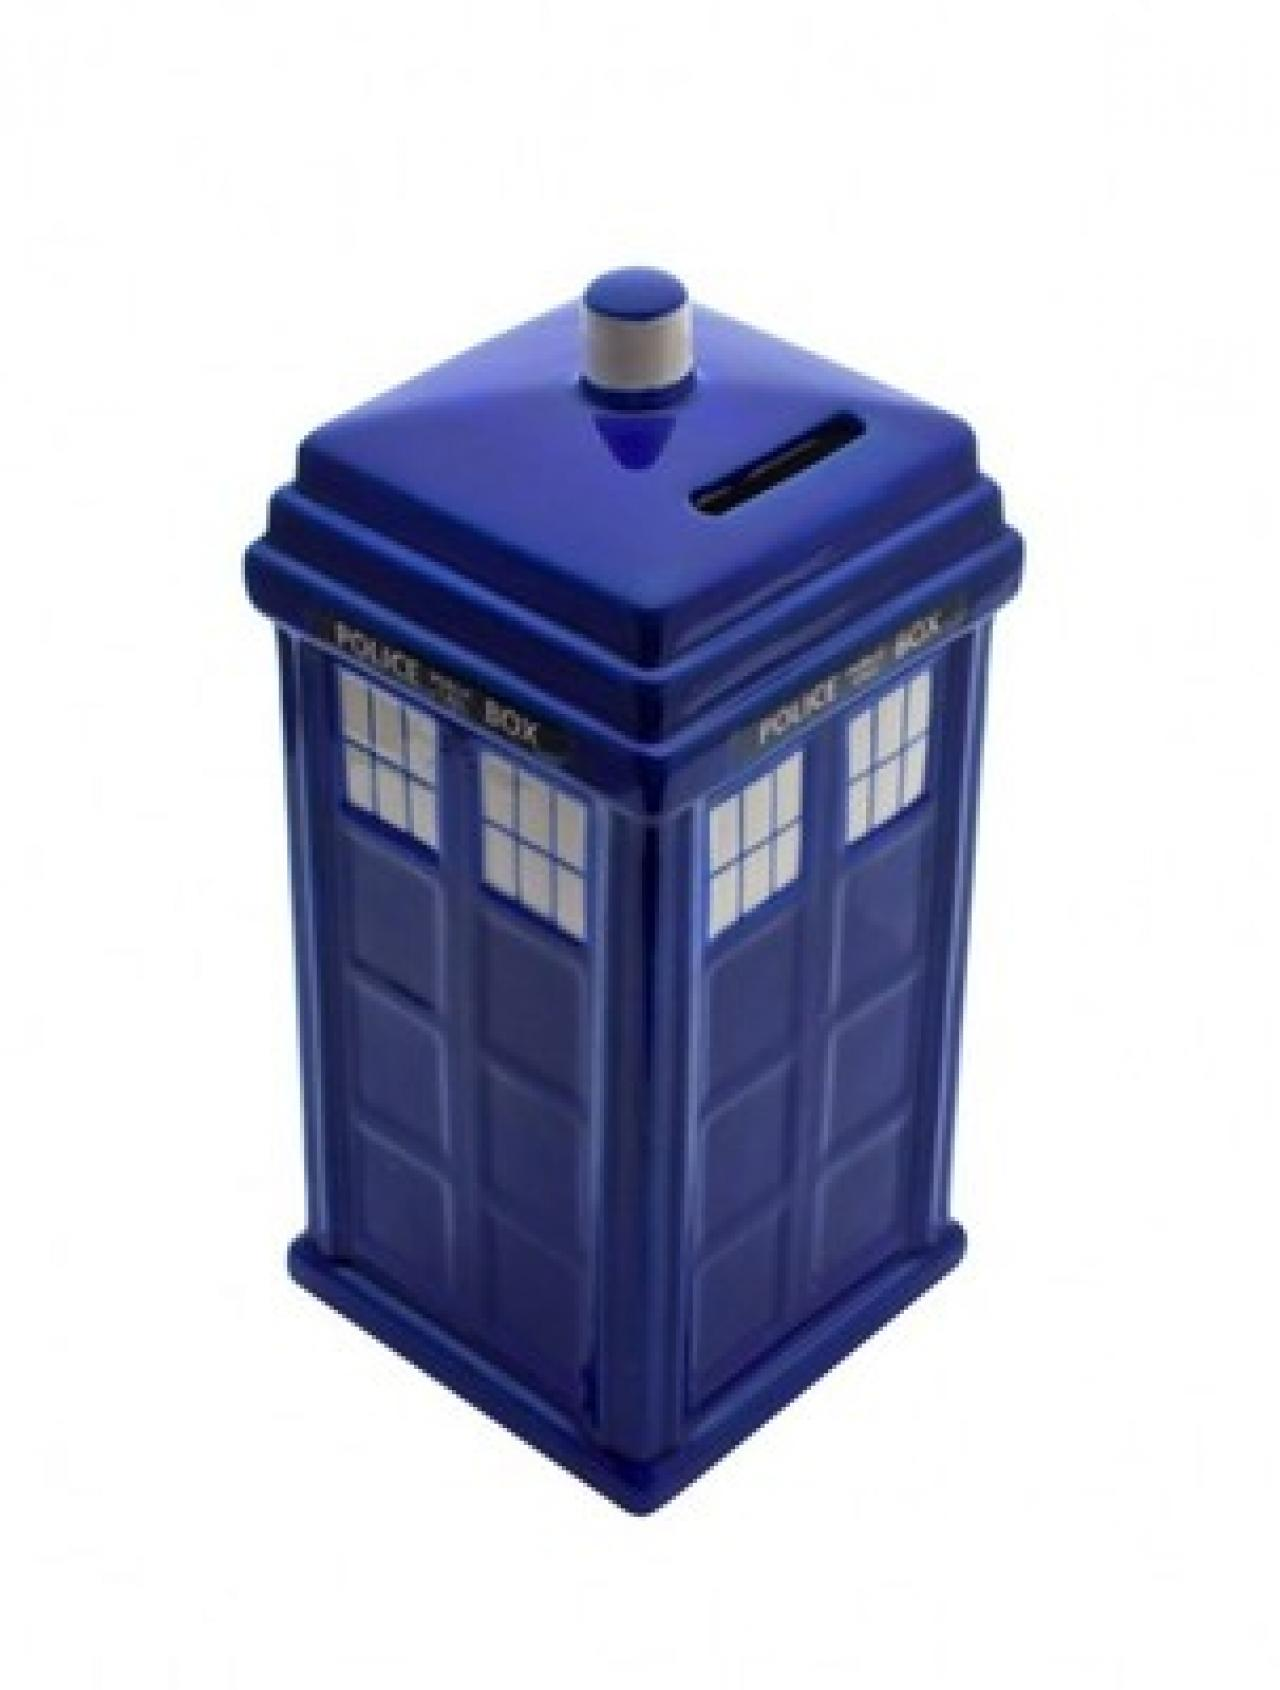 28 perfect doctor who gifts that look just like the tardis syfywire - Tardis piggy bank ...